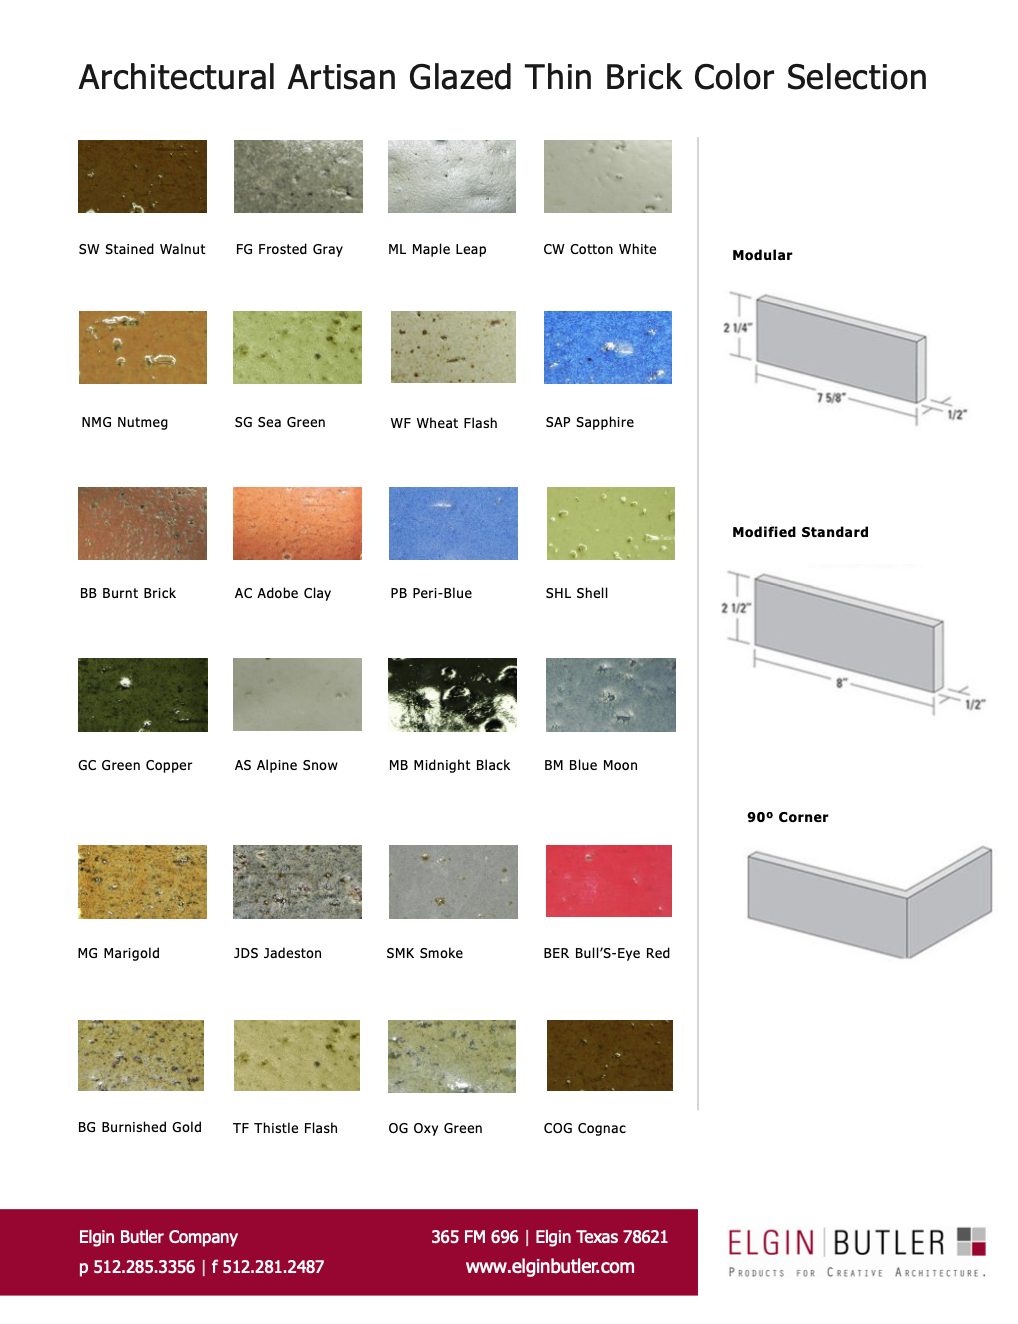 Architectural Artisan Glazed Thin Brick Color Selection Guide